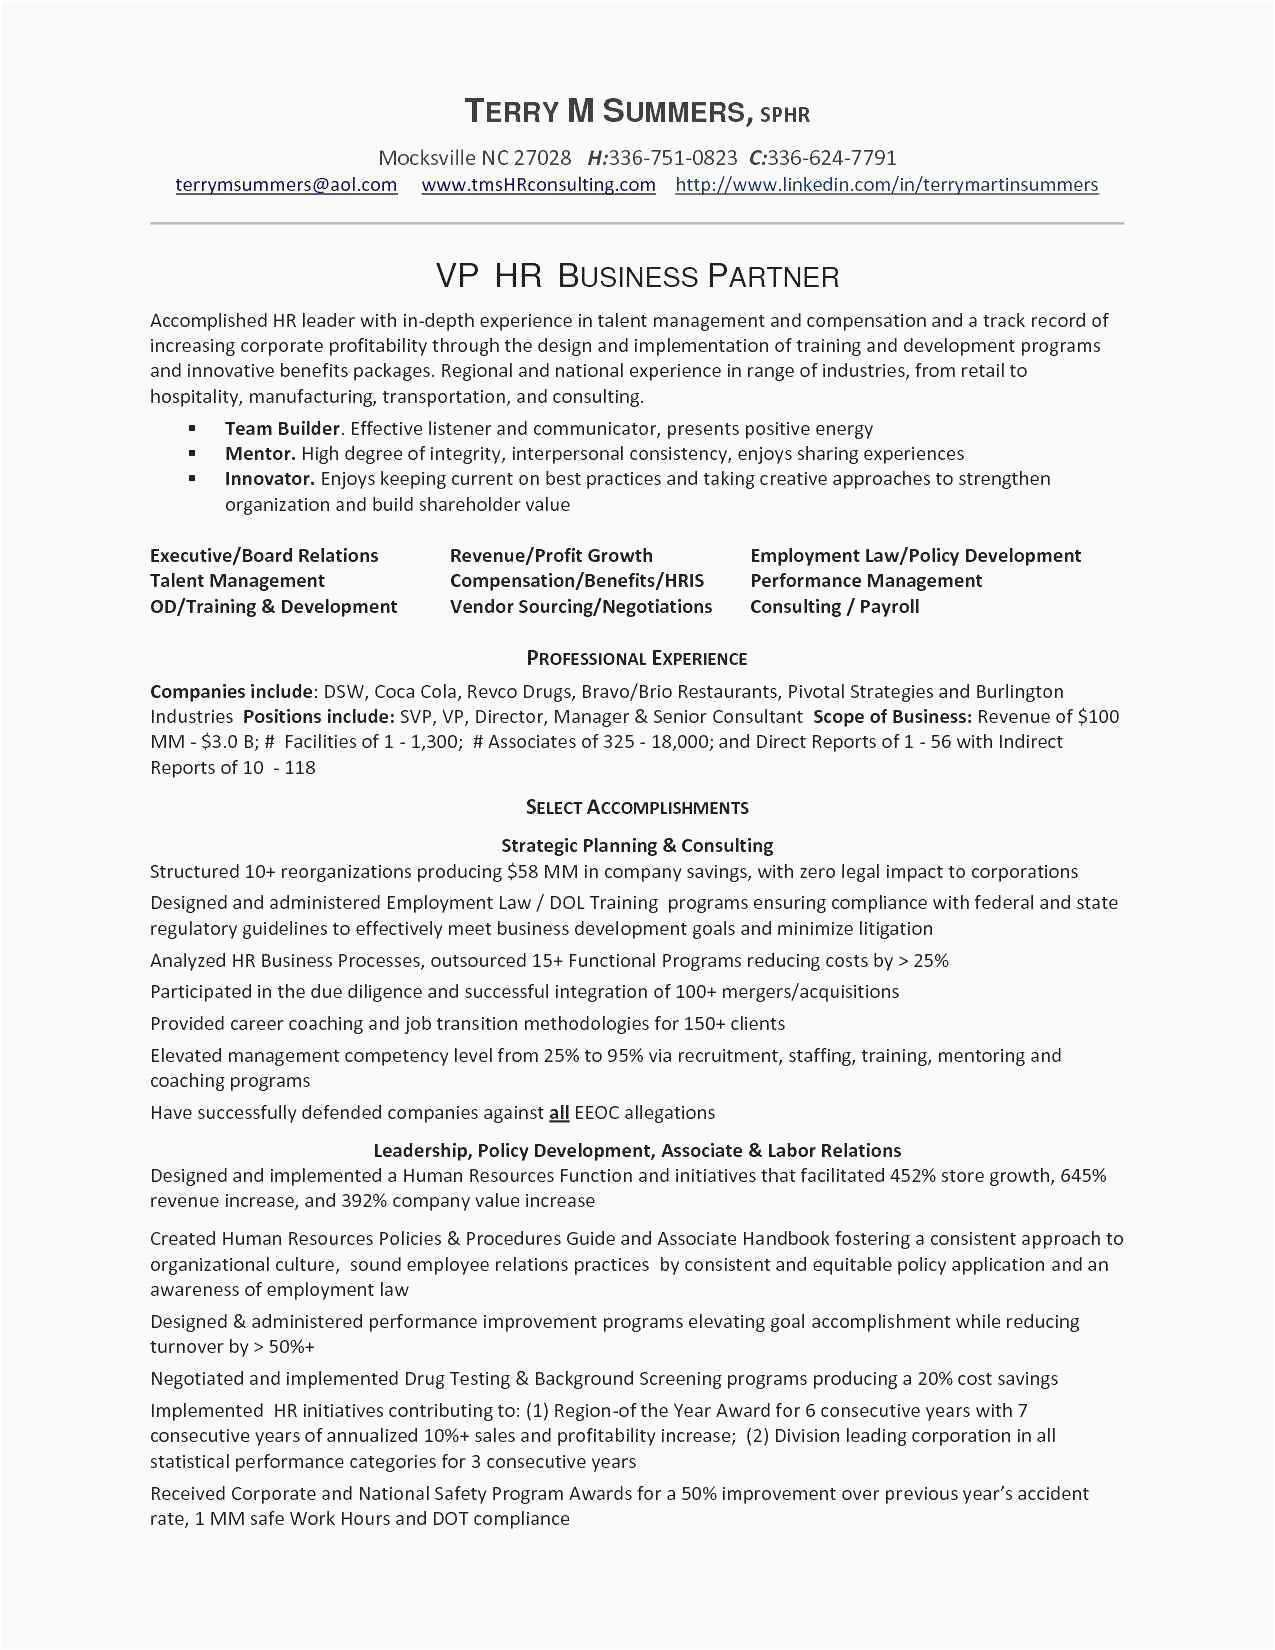 Photographer Resume Template Download - Salutations for Letters 2018 32 Awesome Salutation In A Cover Letter